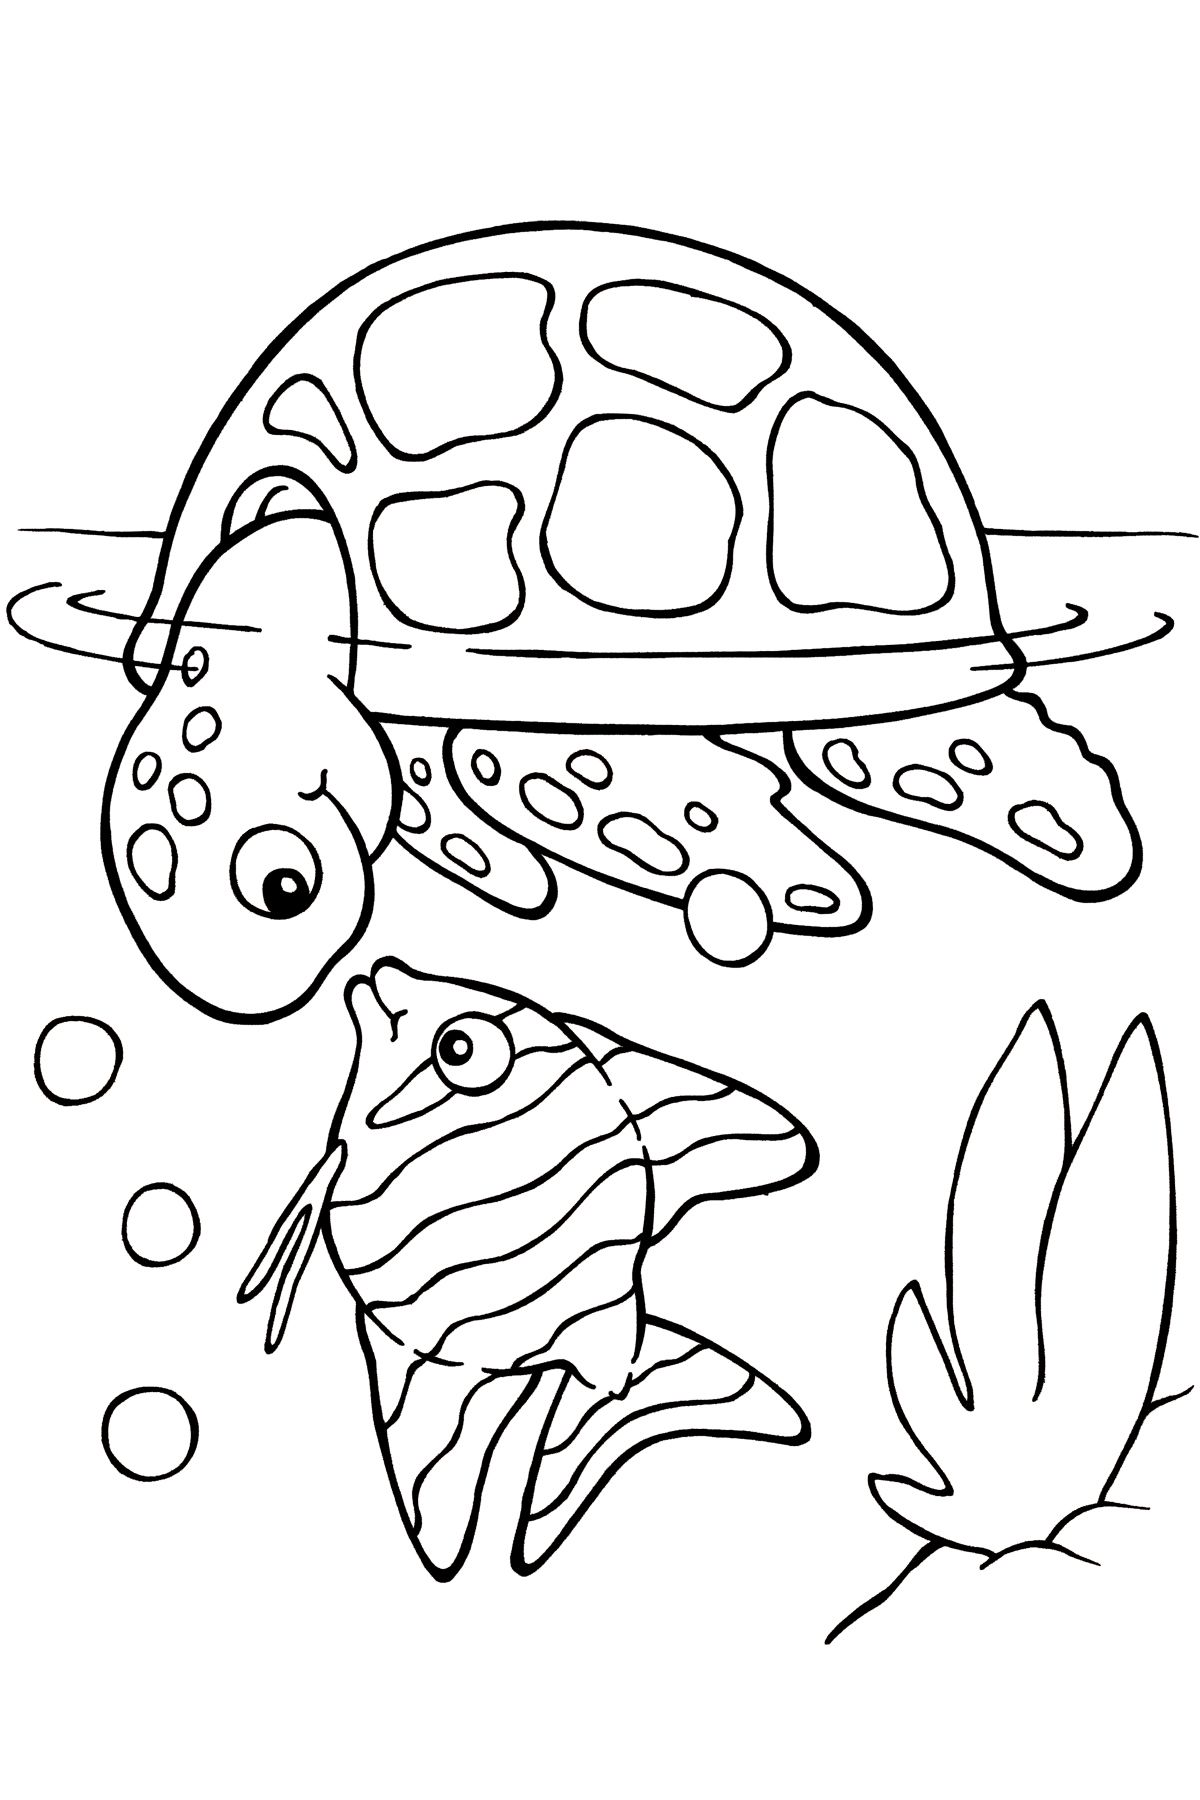 Coloring page colouring pages pinterest coloring pages